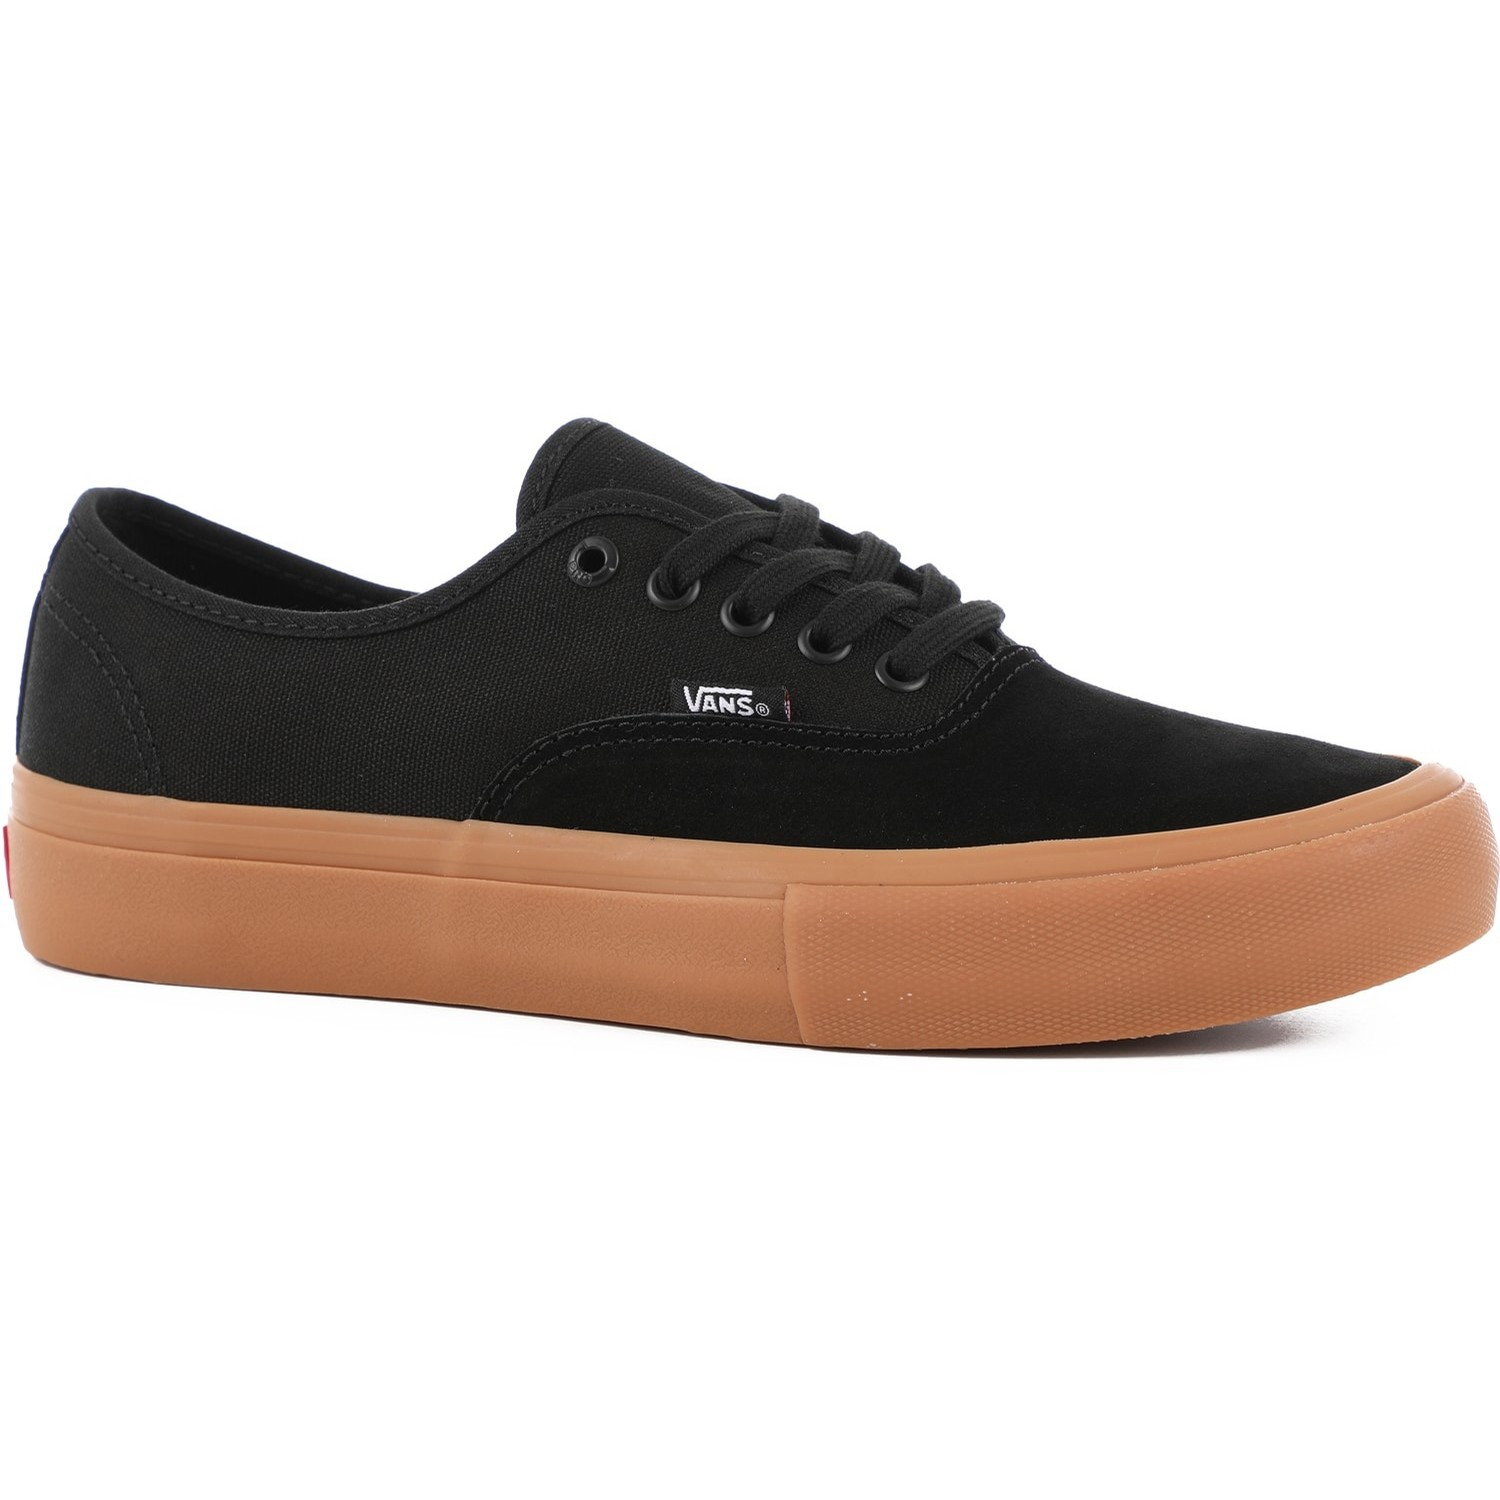 Vans Authentic Pro (Black/Classic Gum) Mens at Tempe